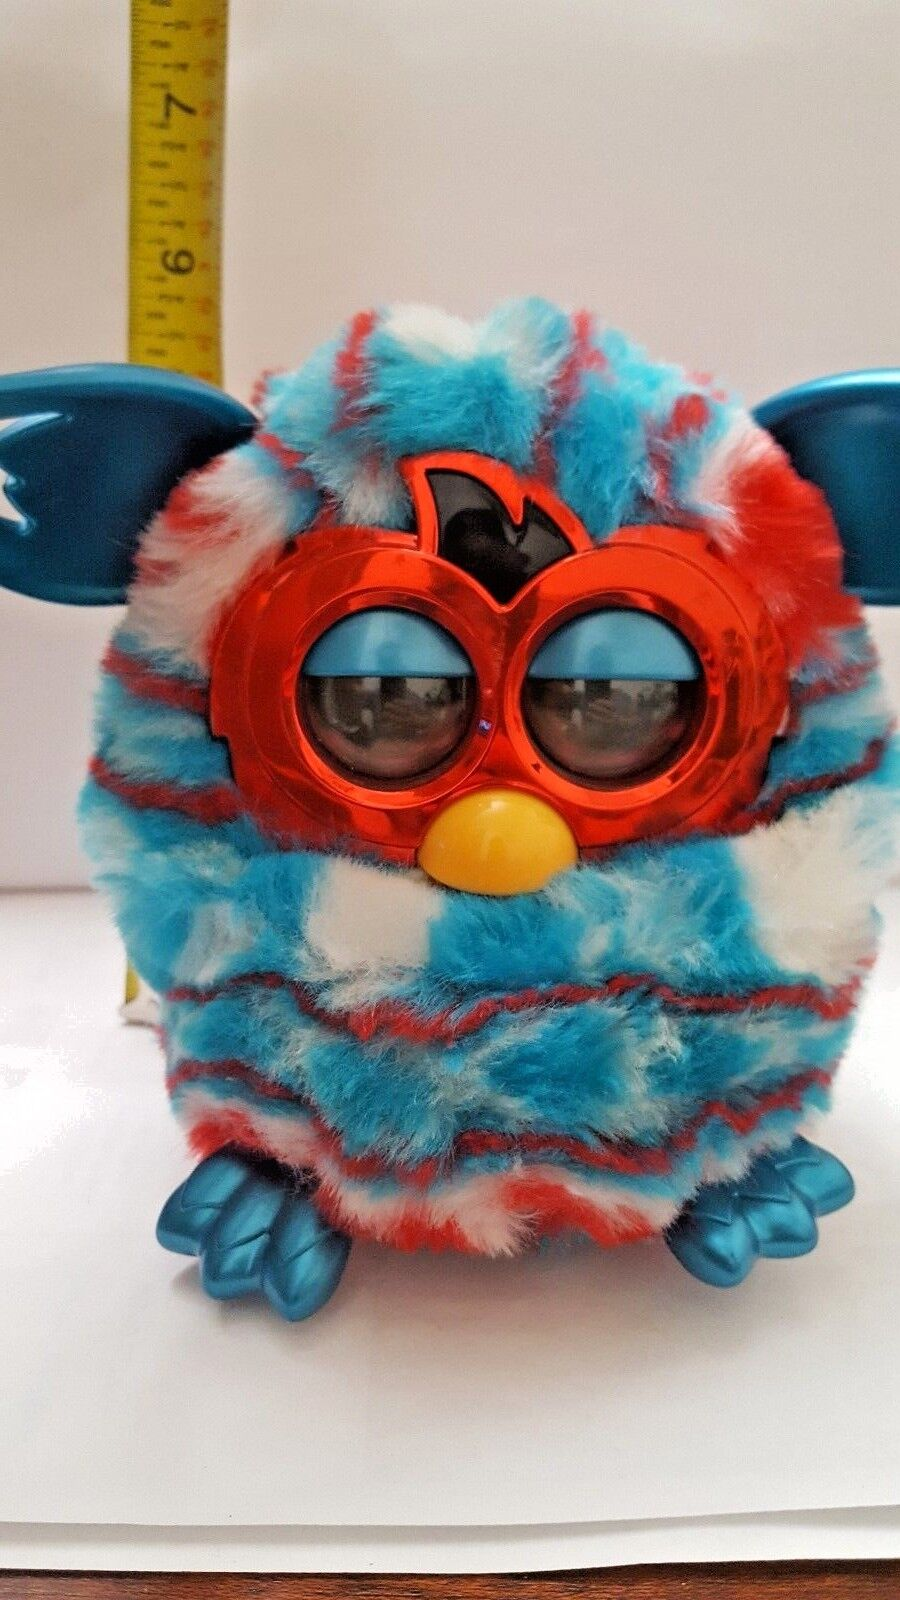 FURBY Hasbro Festive Holiday Red White bluee American Flag Sweater Edition AG